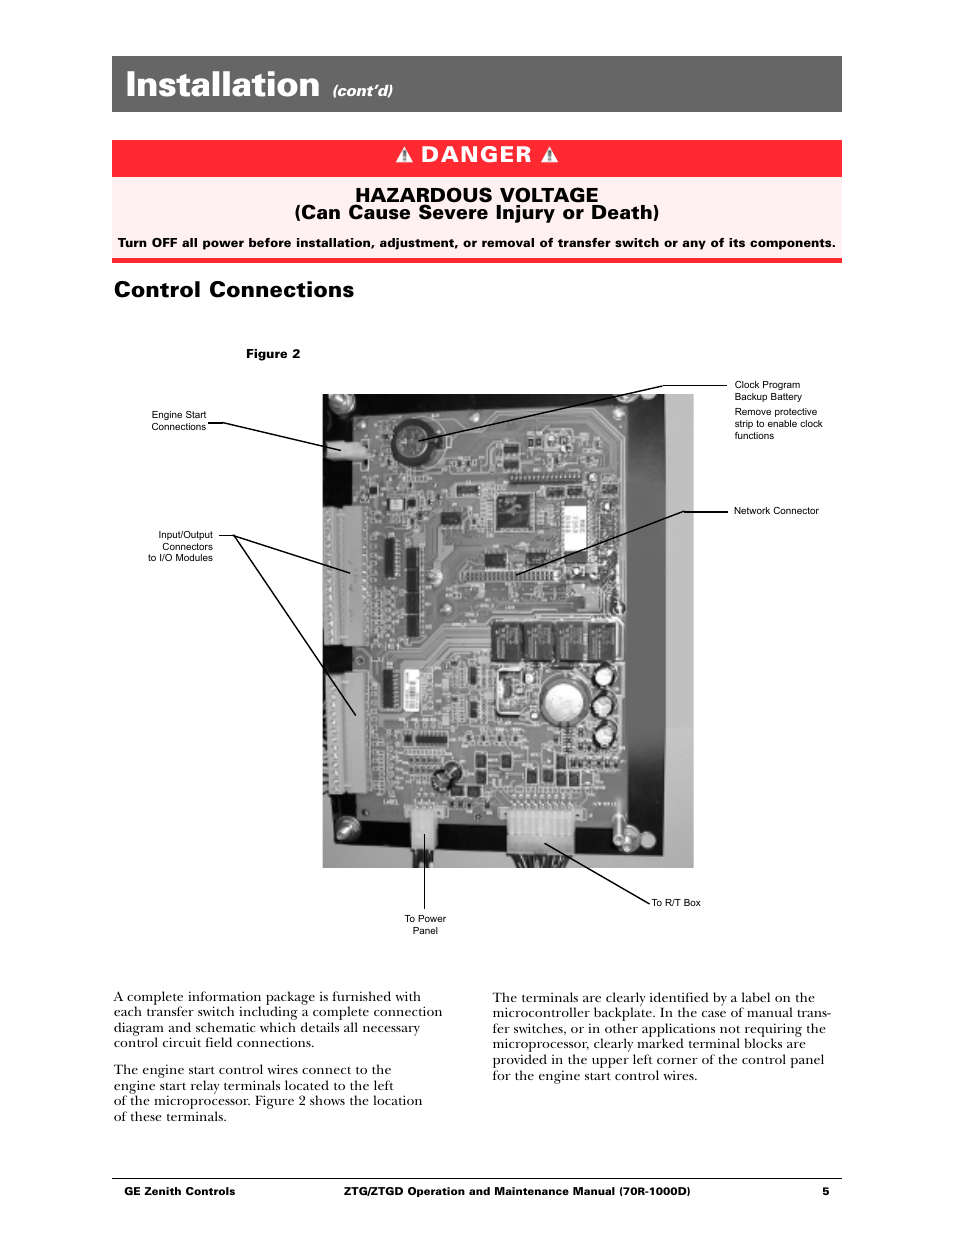 medium resolution of installation danger control connections ge ztgd series transfer switches 40 3000 amps user manual page 5 36